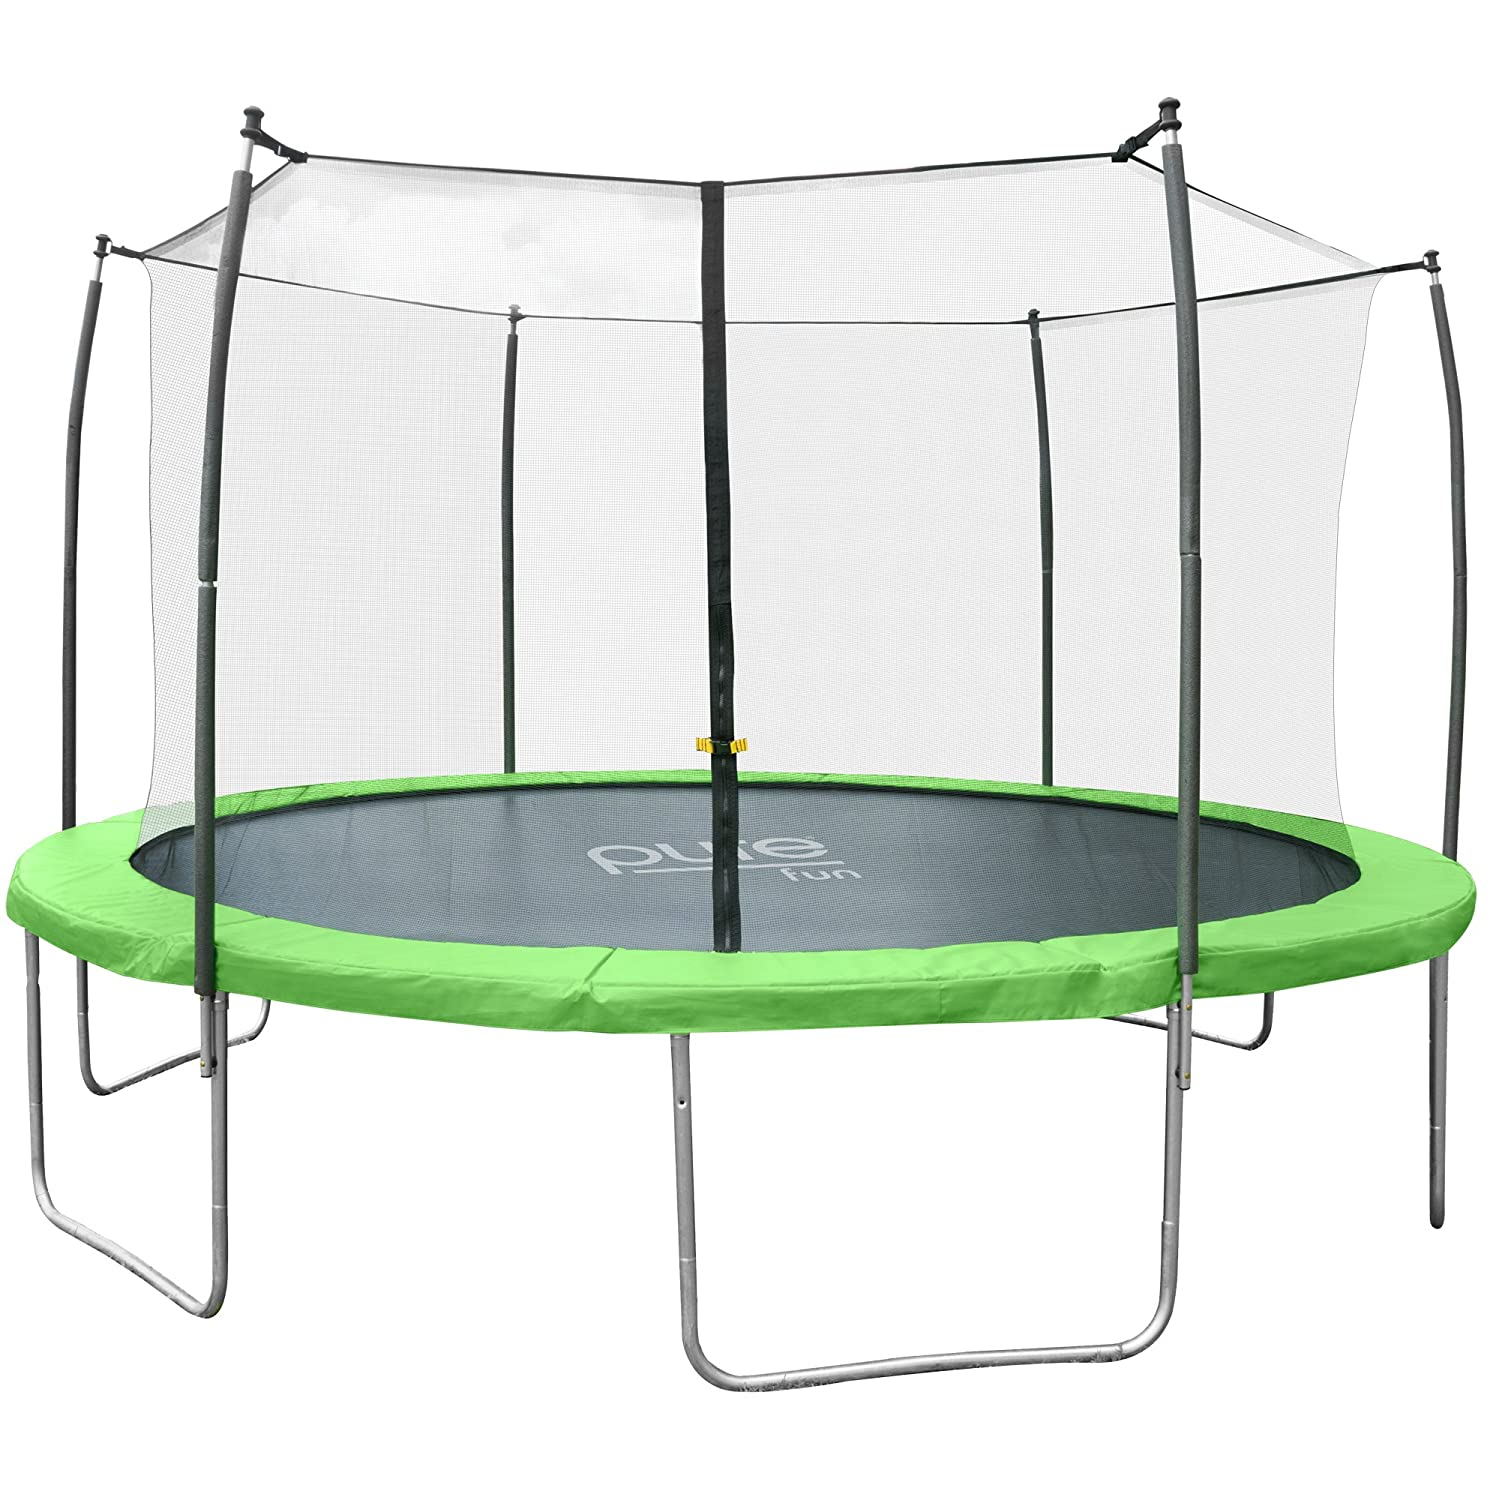 Pure Fun Dura-Bounce Trampoline Black Friday Deal